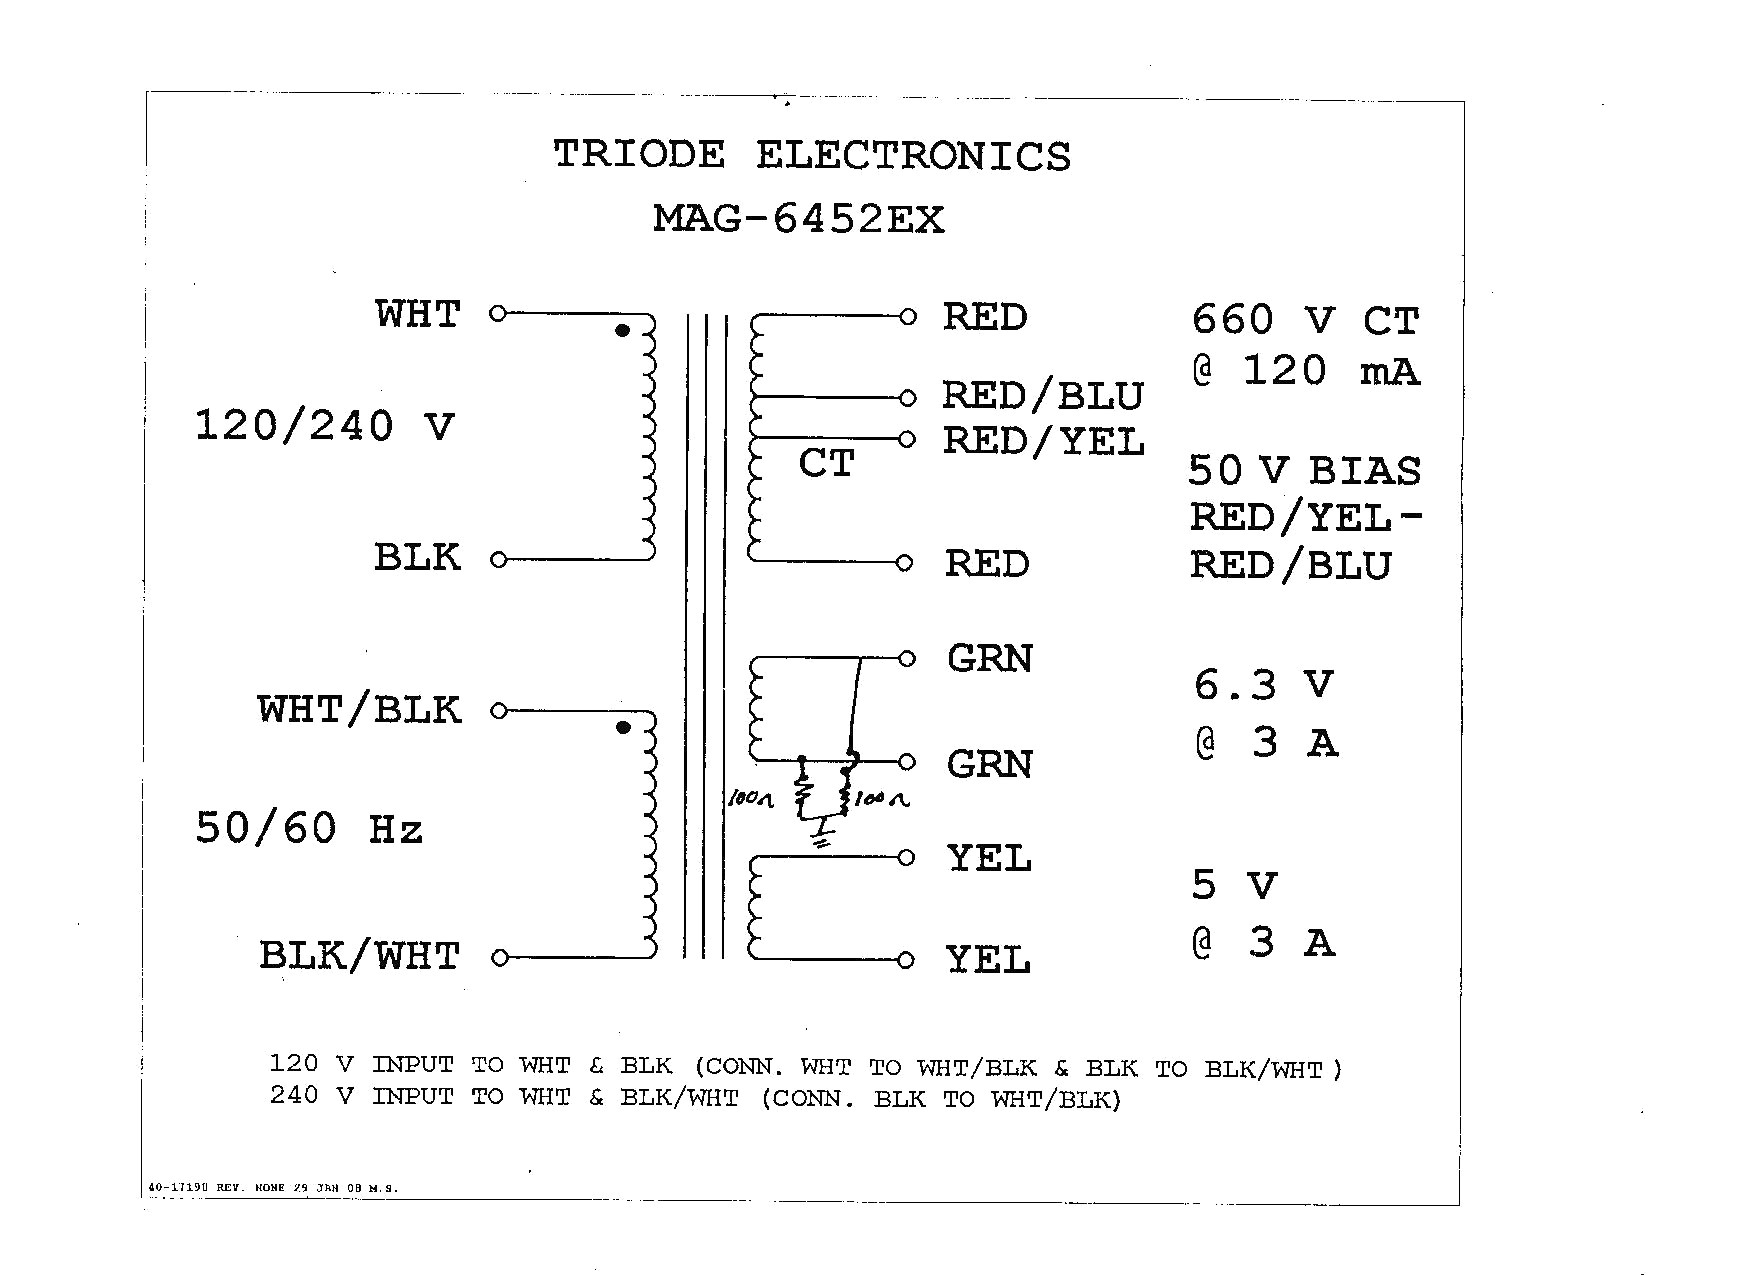 208 Volt 3 Phase Diagram Wiring Schemes 208v Receptacle 600v To Transformer Wire Center U2022 Rh 207 246 102 26 Plug